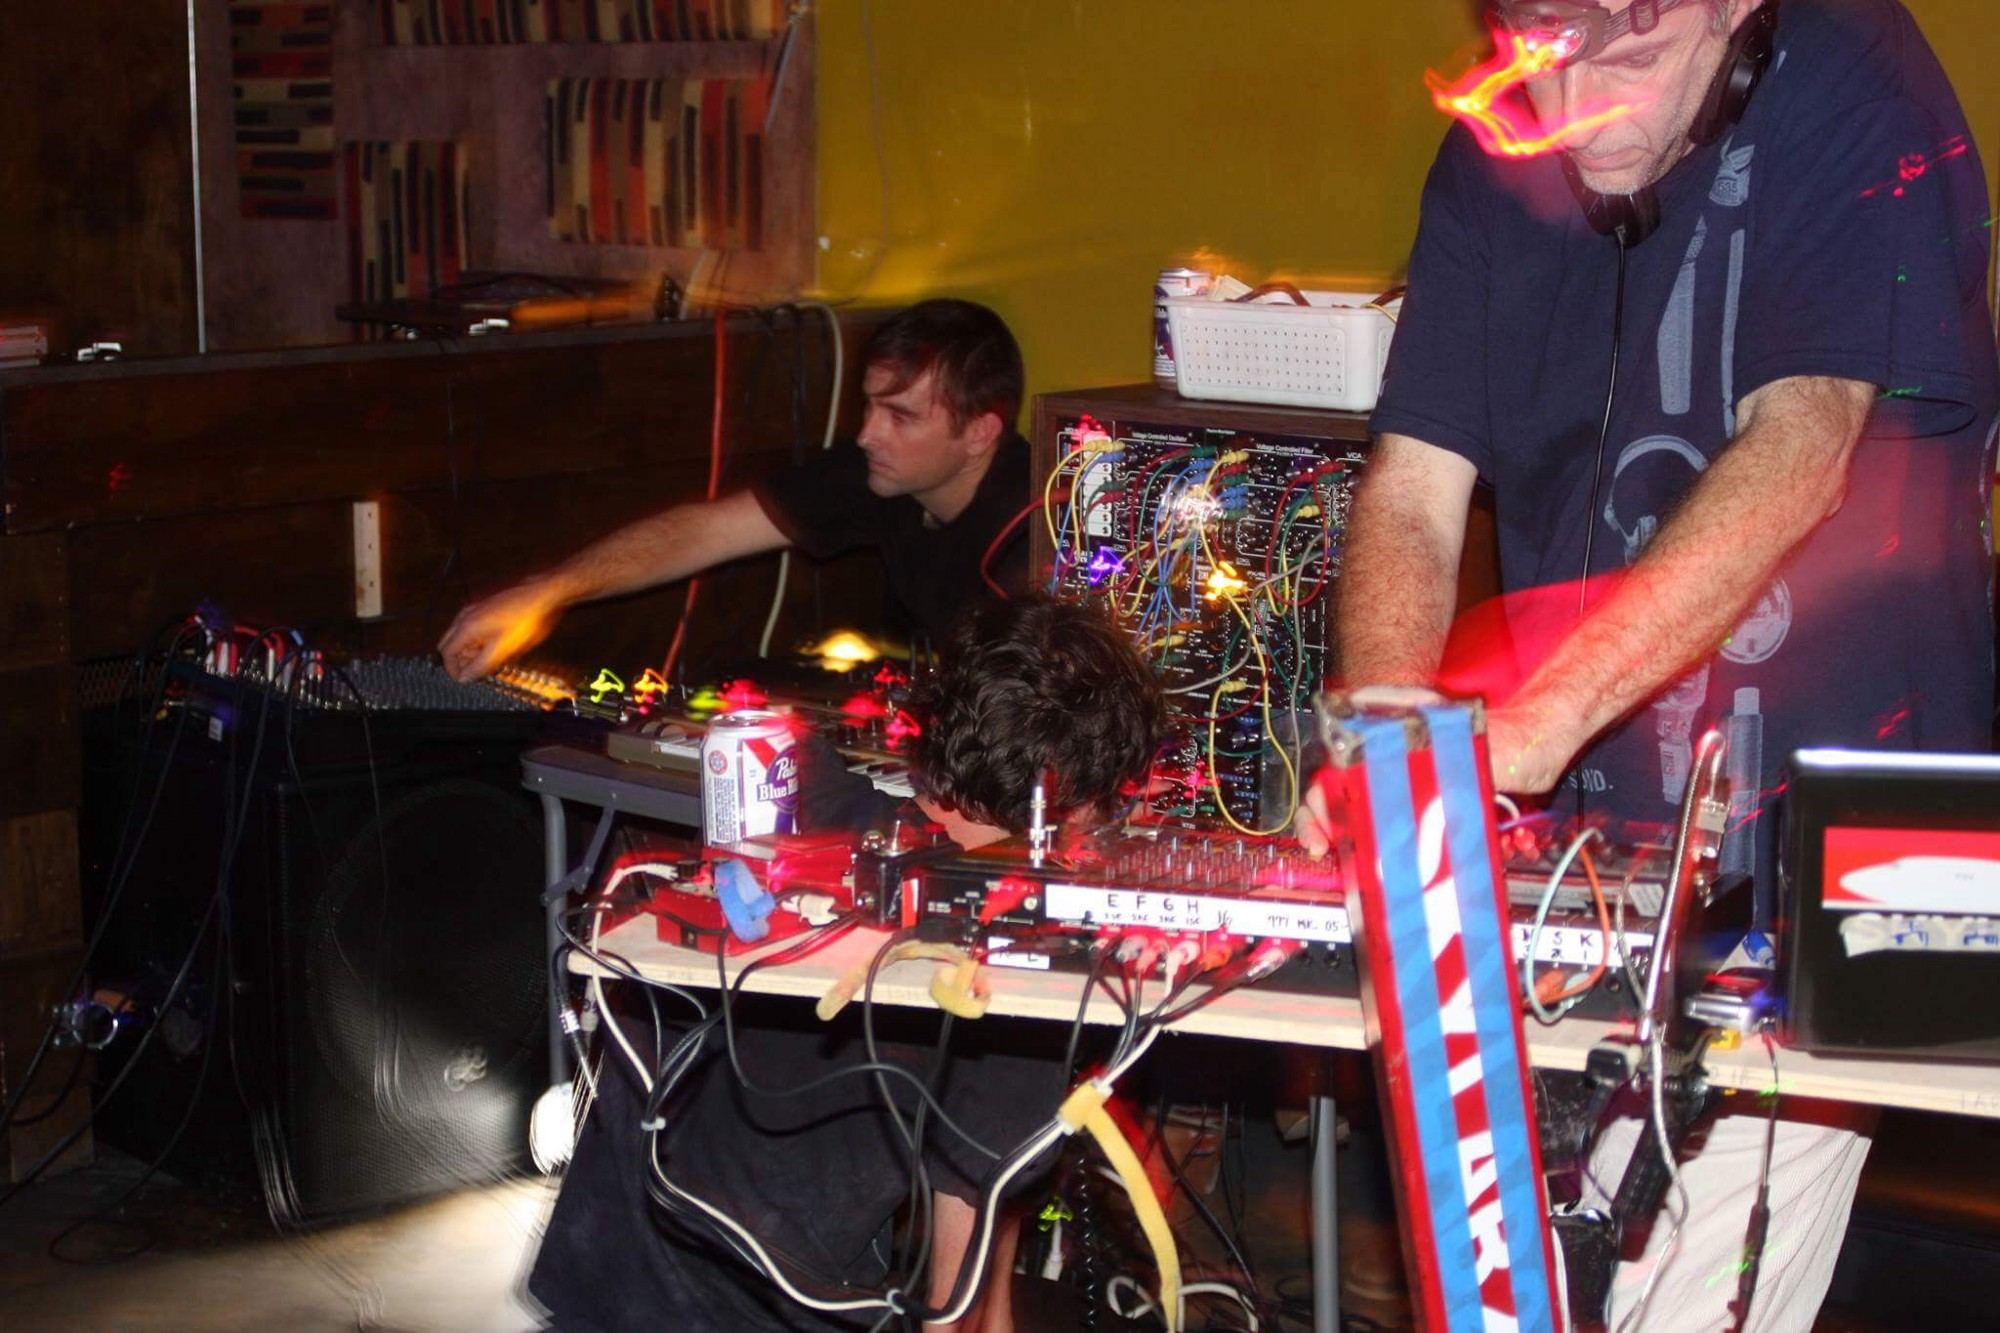 RAVE IN THE MACHINE: The Story of Skylab2000's Dennis Barton